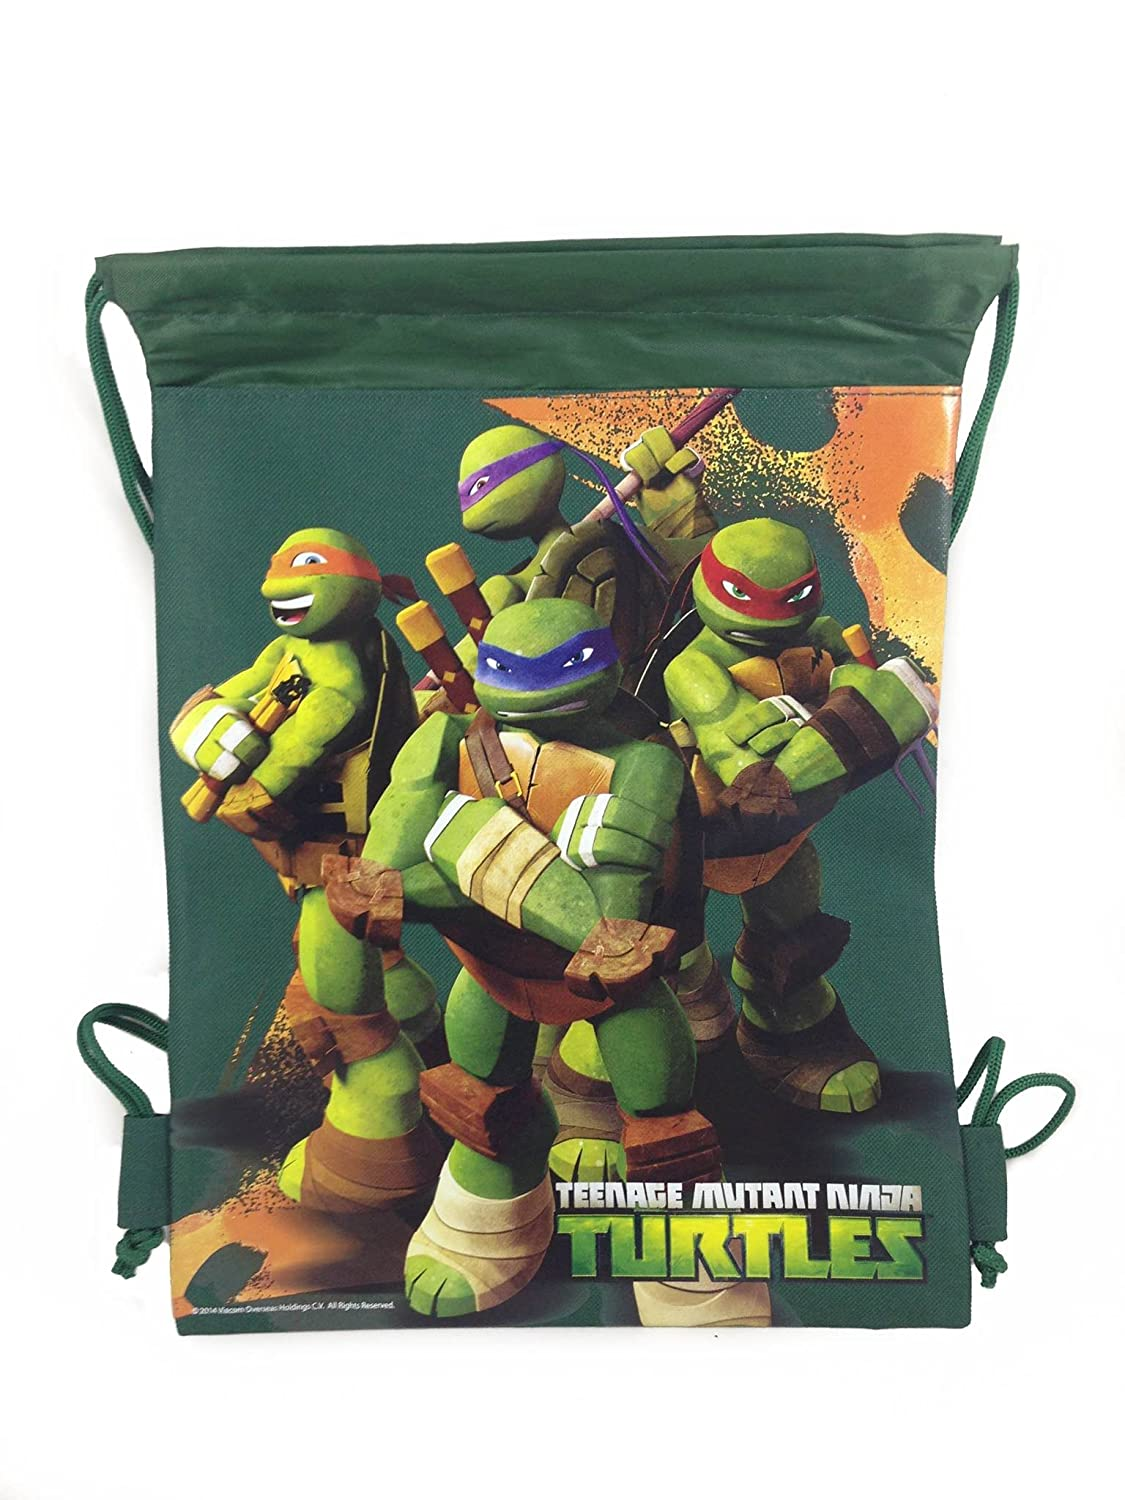 Amazon.com: Teenage Mutant Ninja Turtles Verde Cordón ...